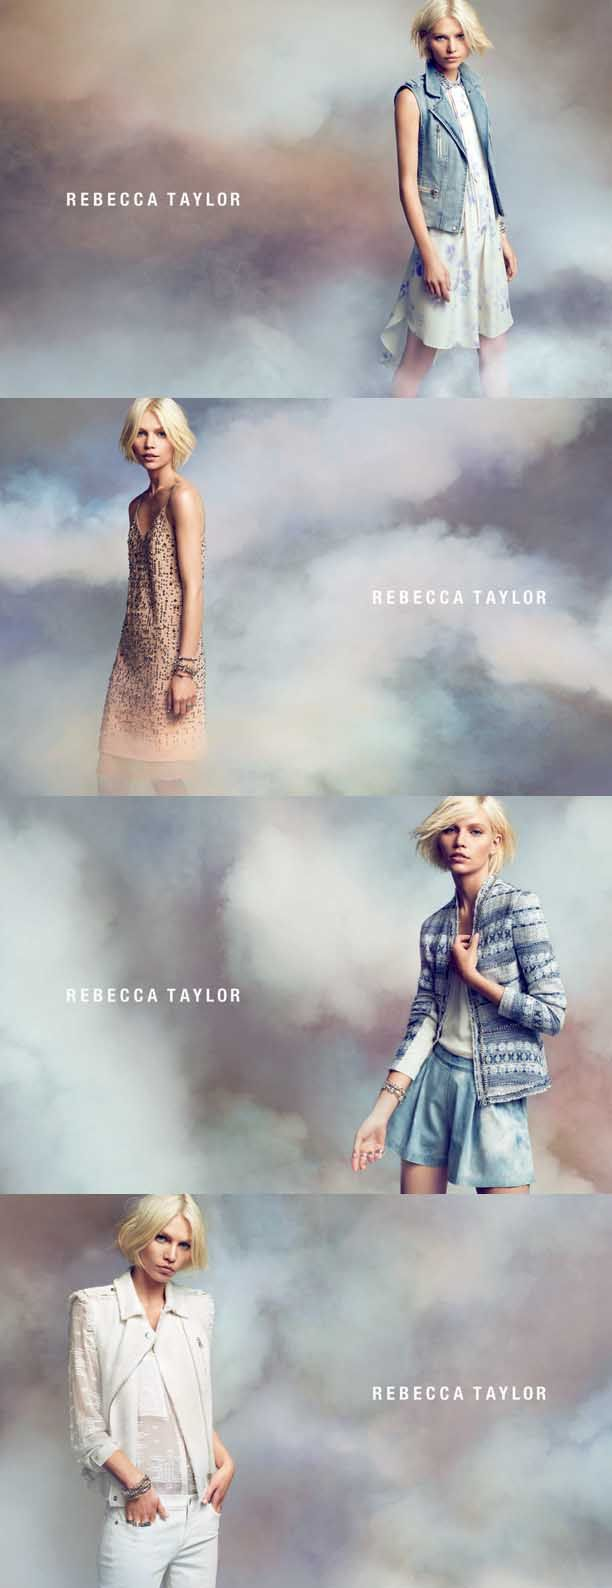 First Look: Rebecca Taylor S/S 13 Campaign